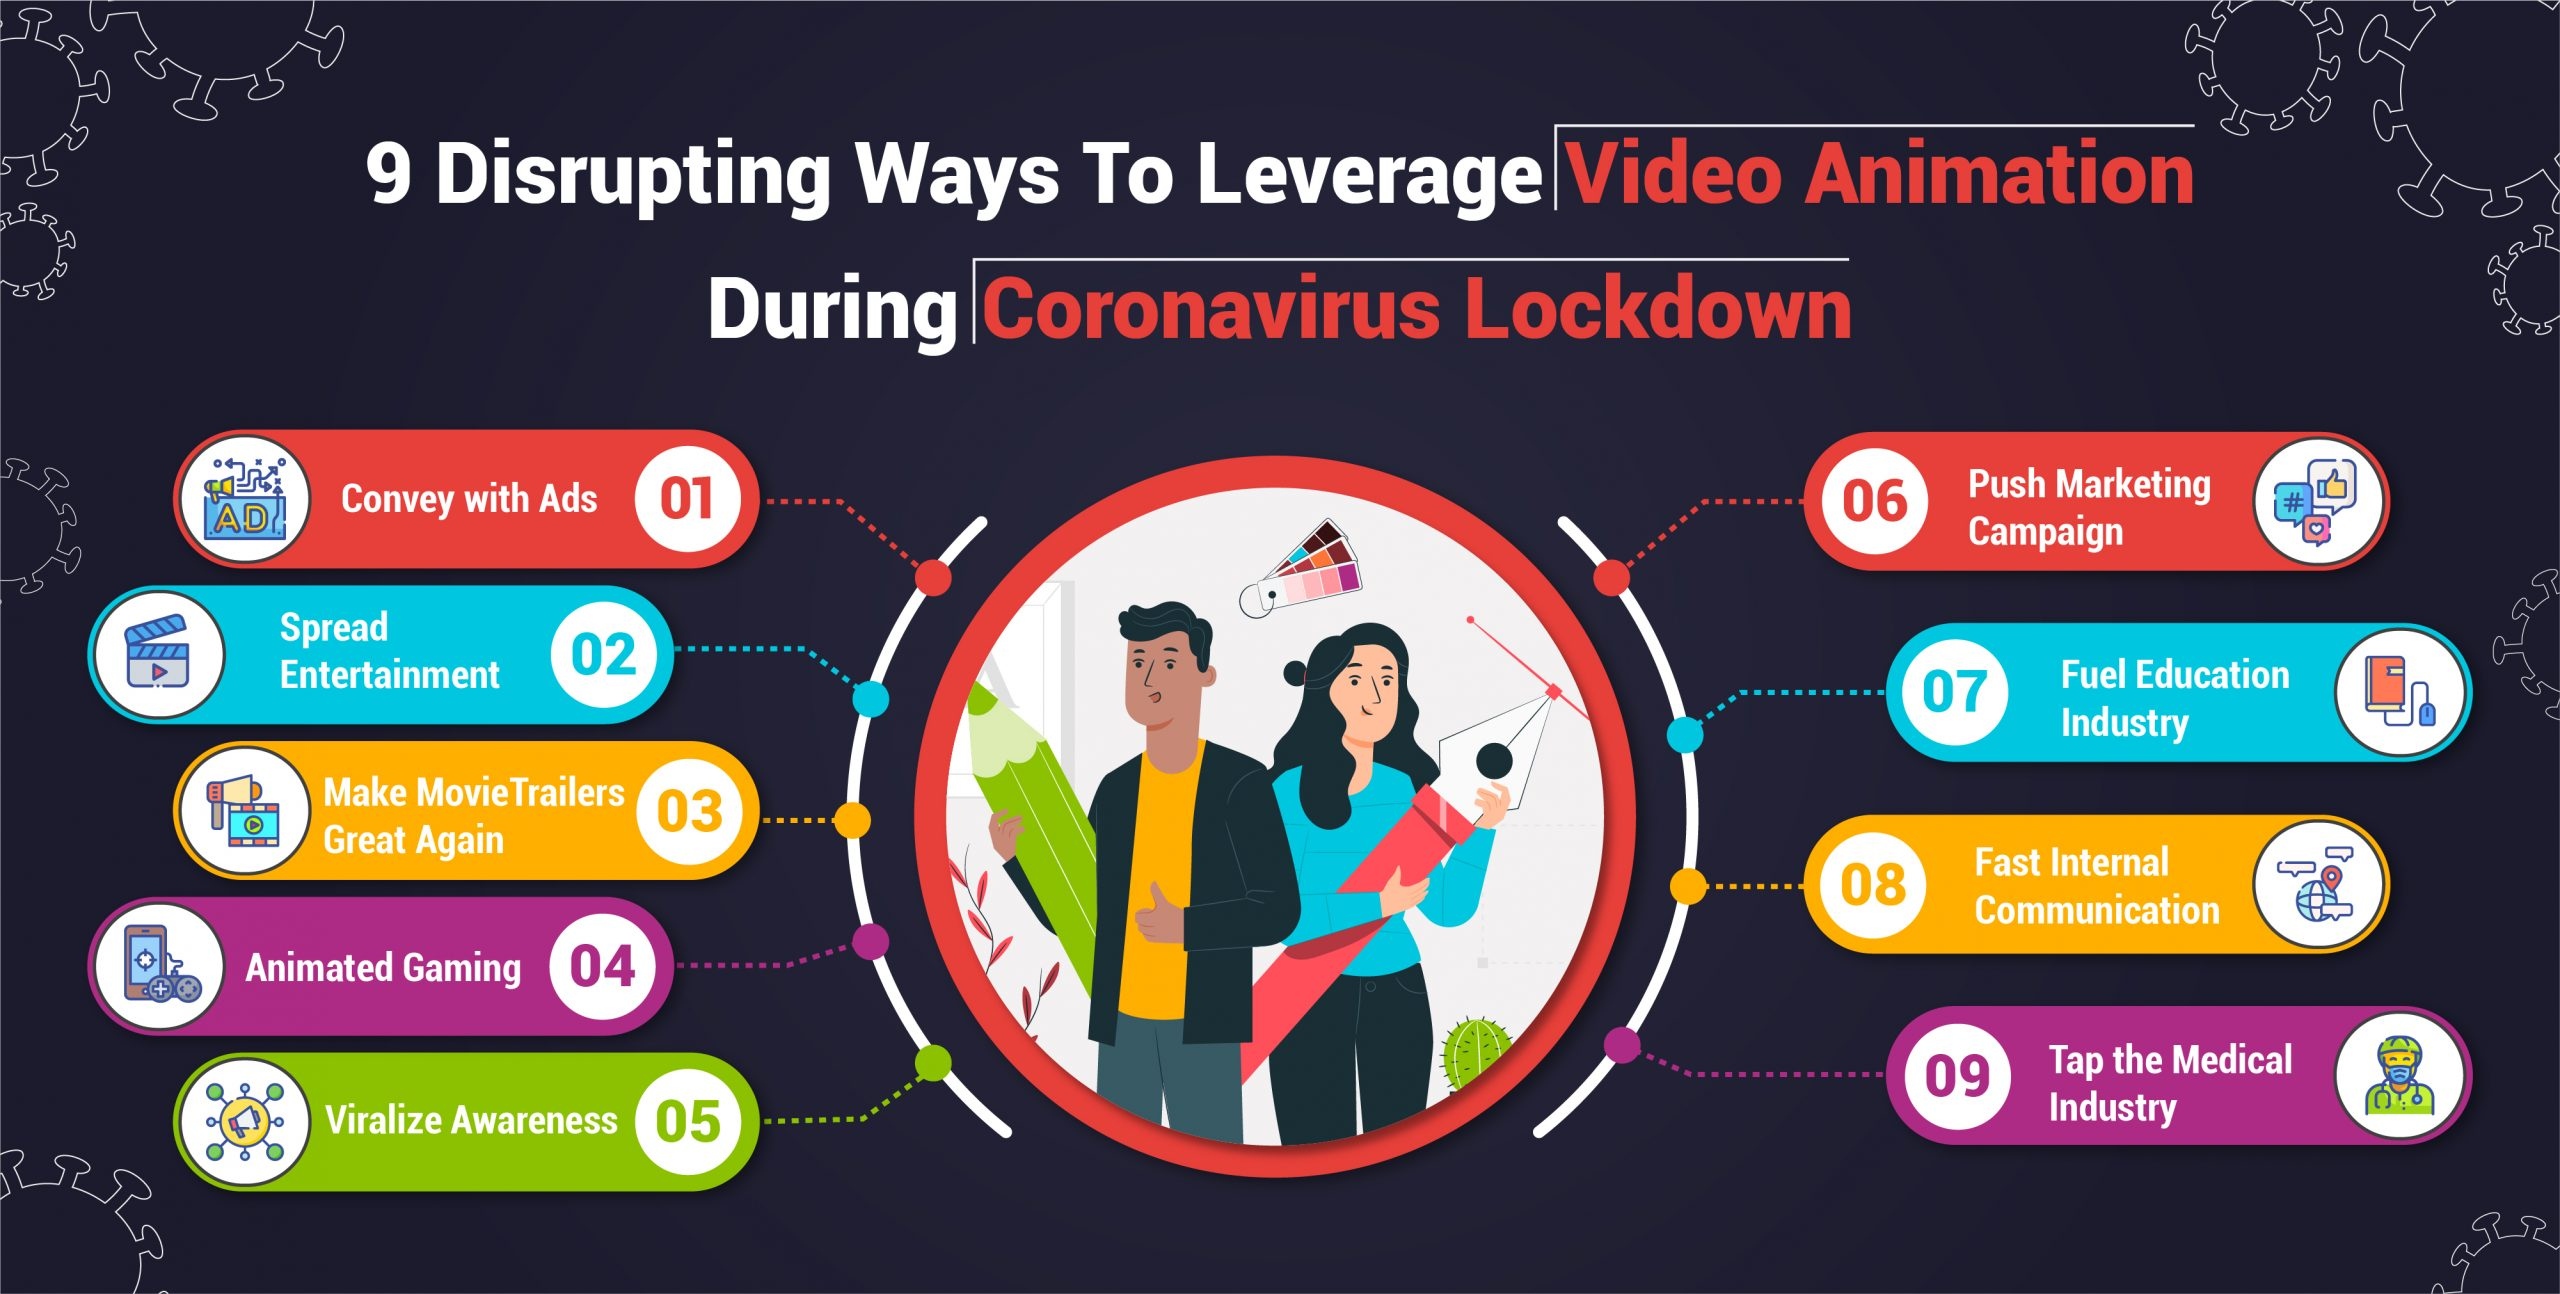 9 Disrupting Ways To Leverage Video Animation During Coronavirus Lockdown